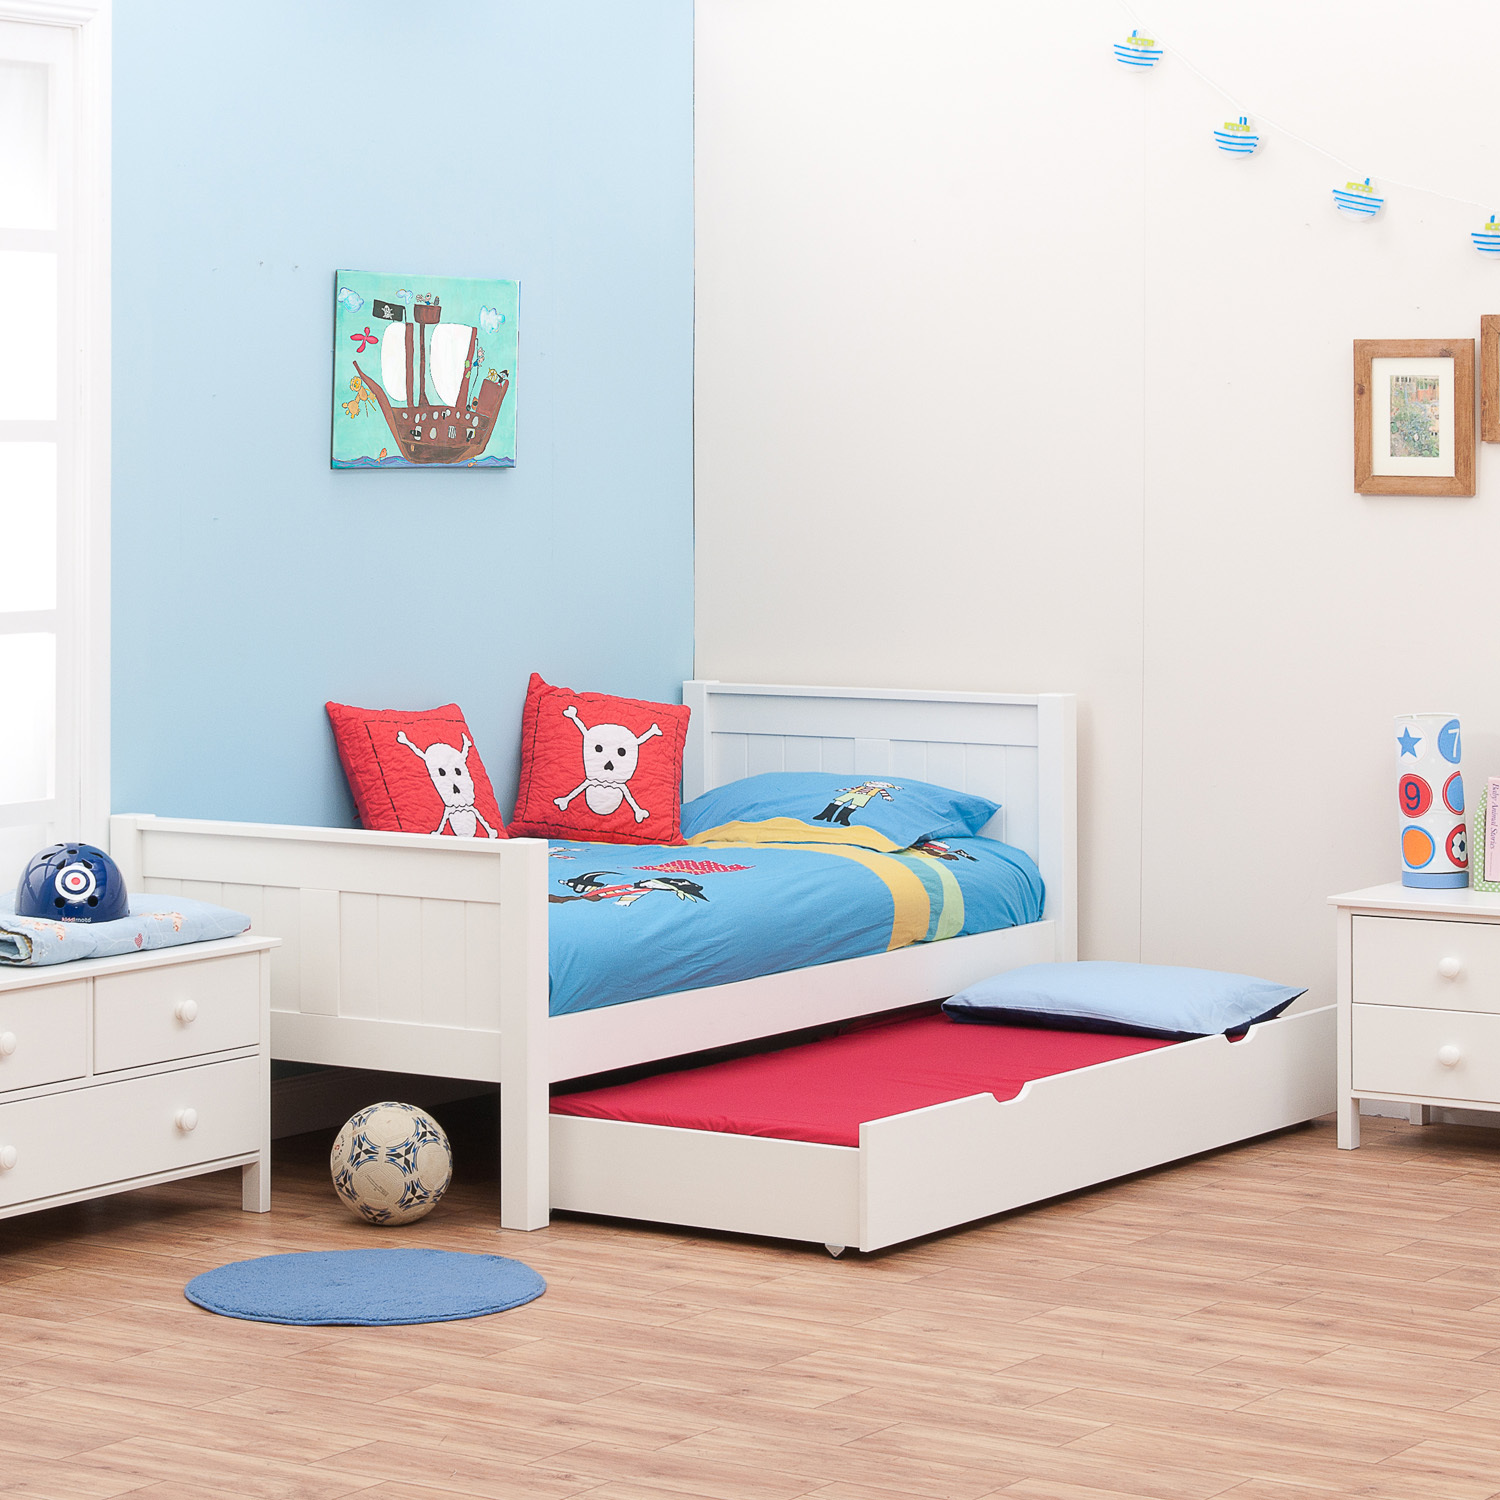 kids trundle beds kids trundle bed sets ba amp kids kids 39 furniture kids 39 beds AJYSQOL